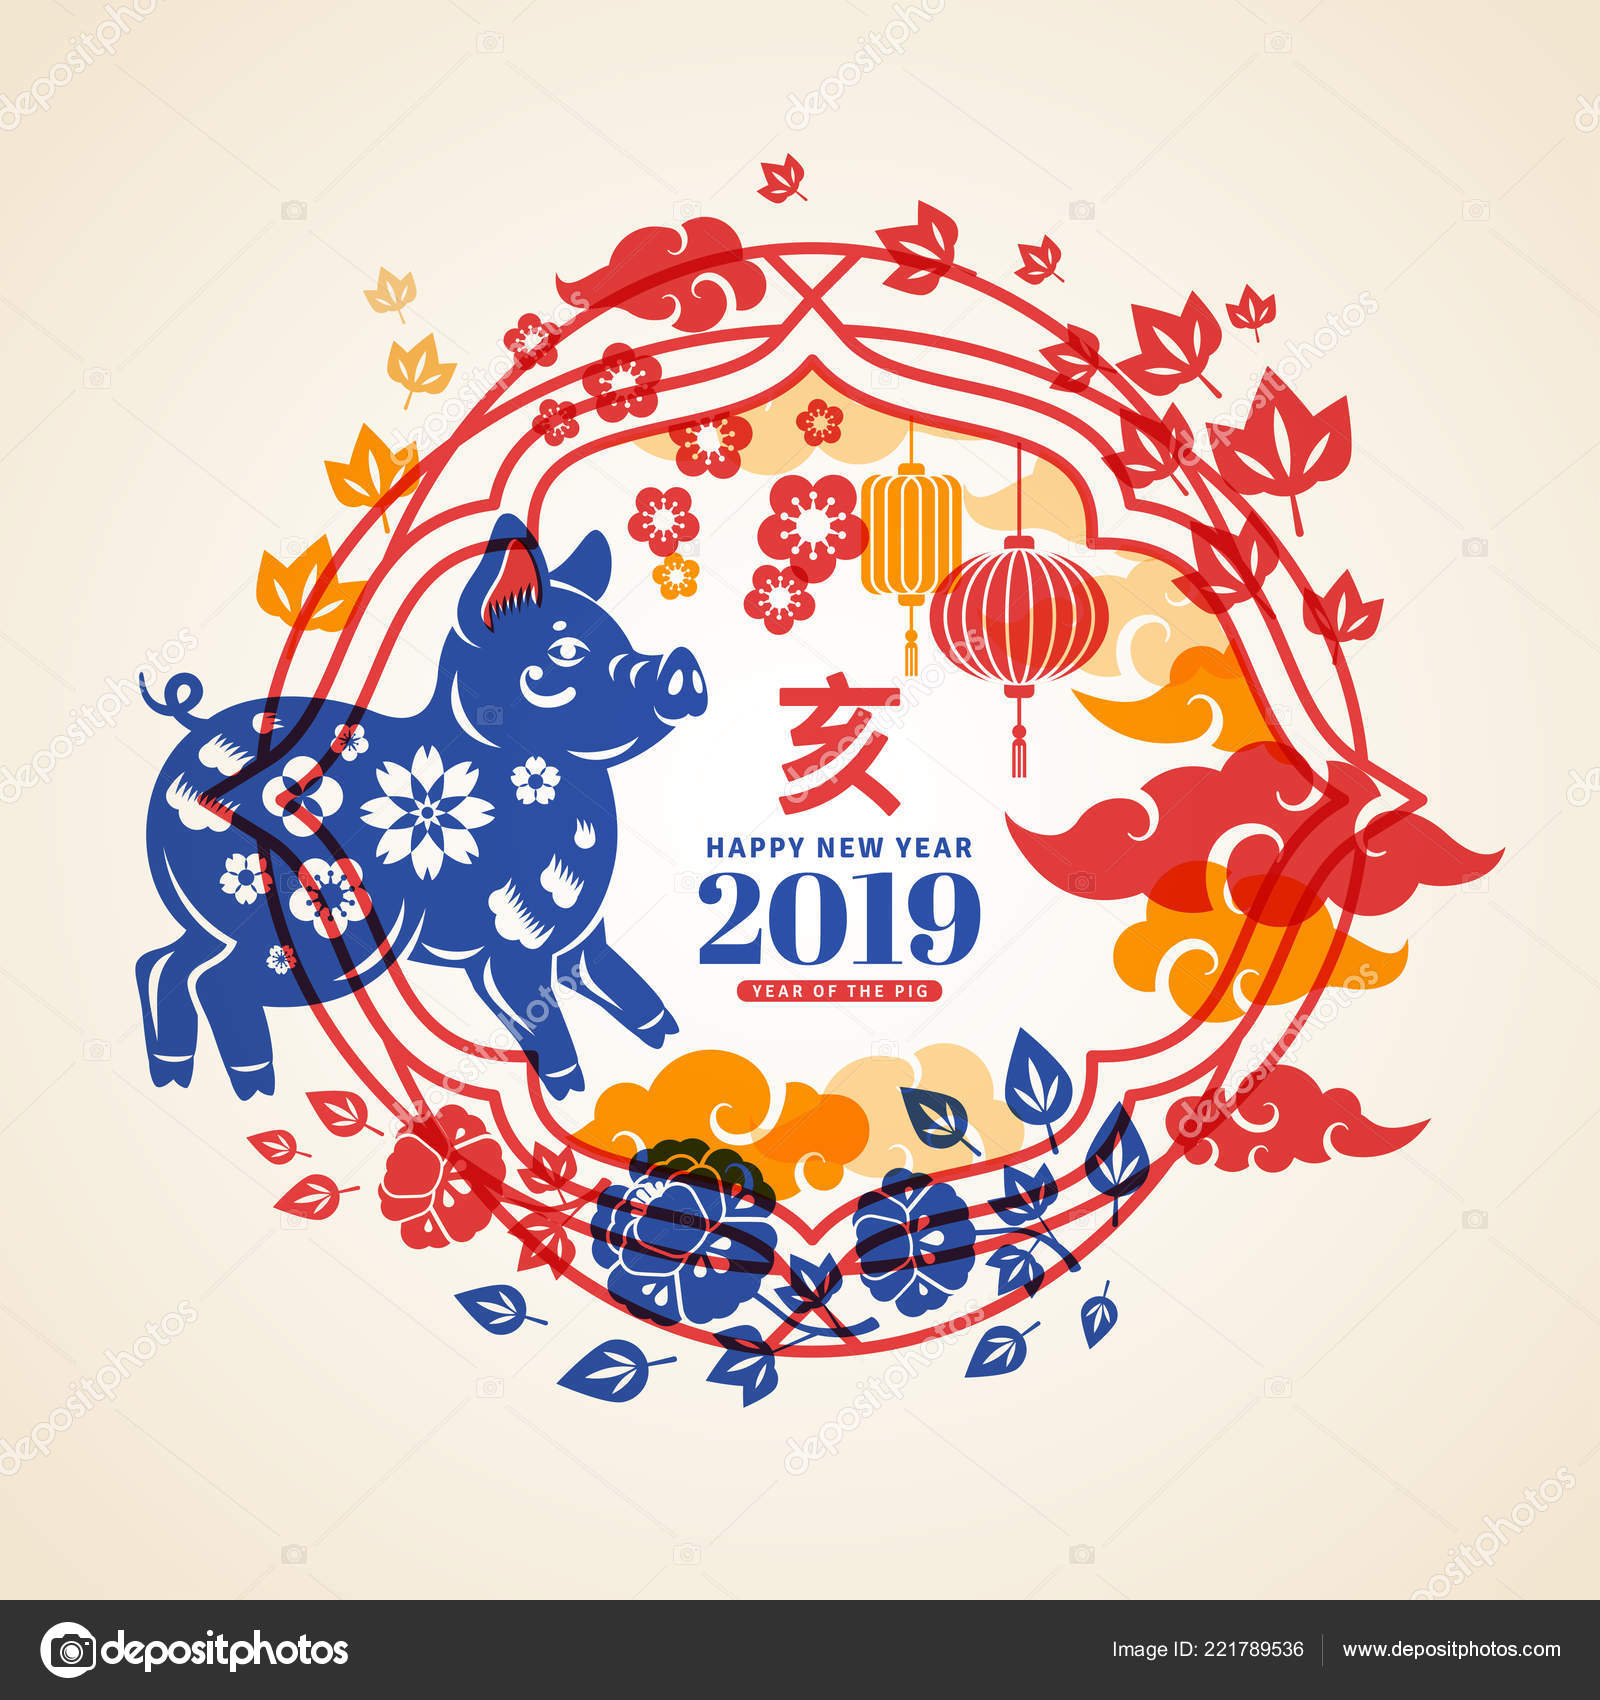 chinese new year symbol for 2019 vector illustration zodiac sign boar with flowers border frame isolated on white background hieroglyph translation pig